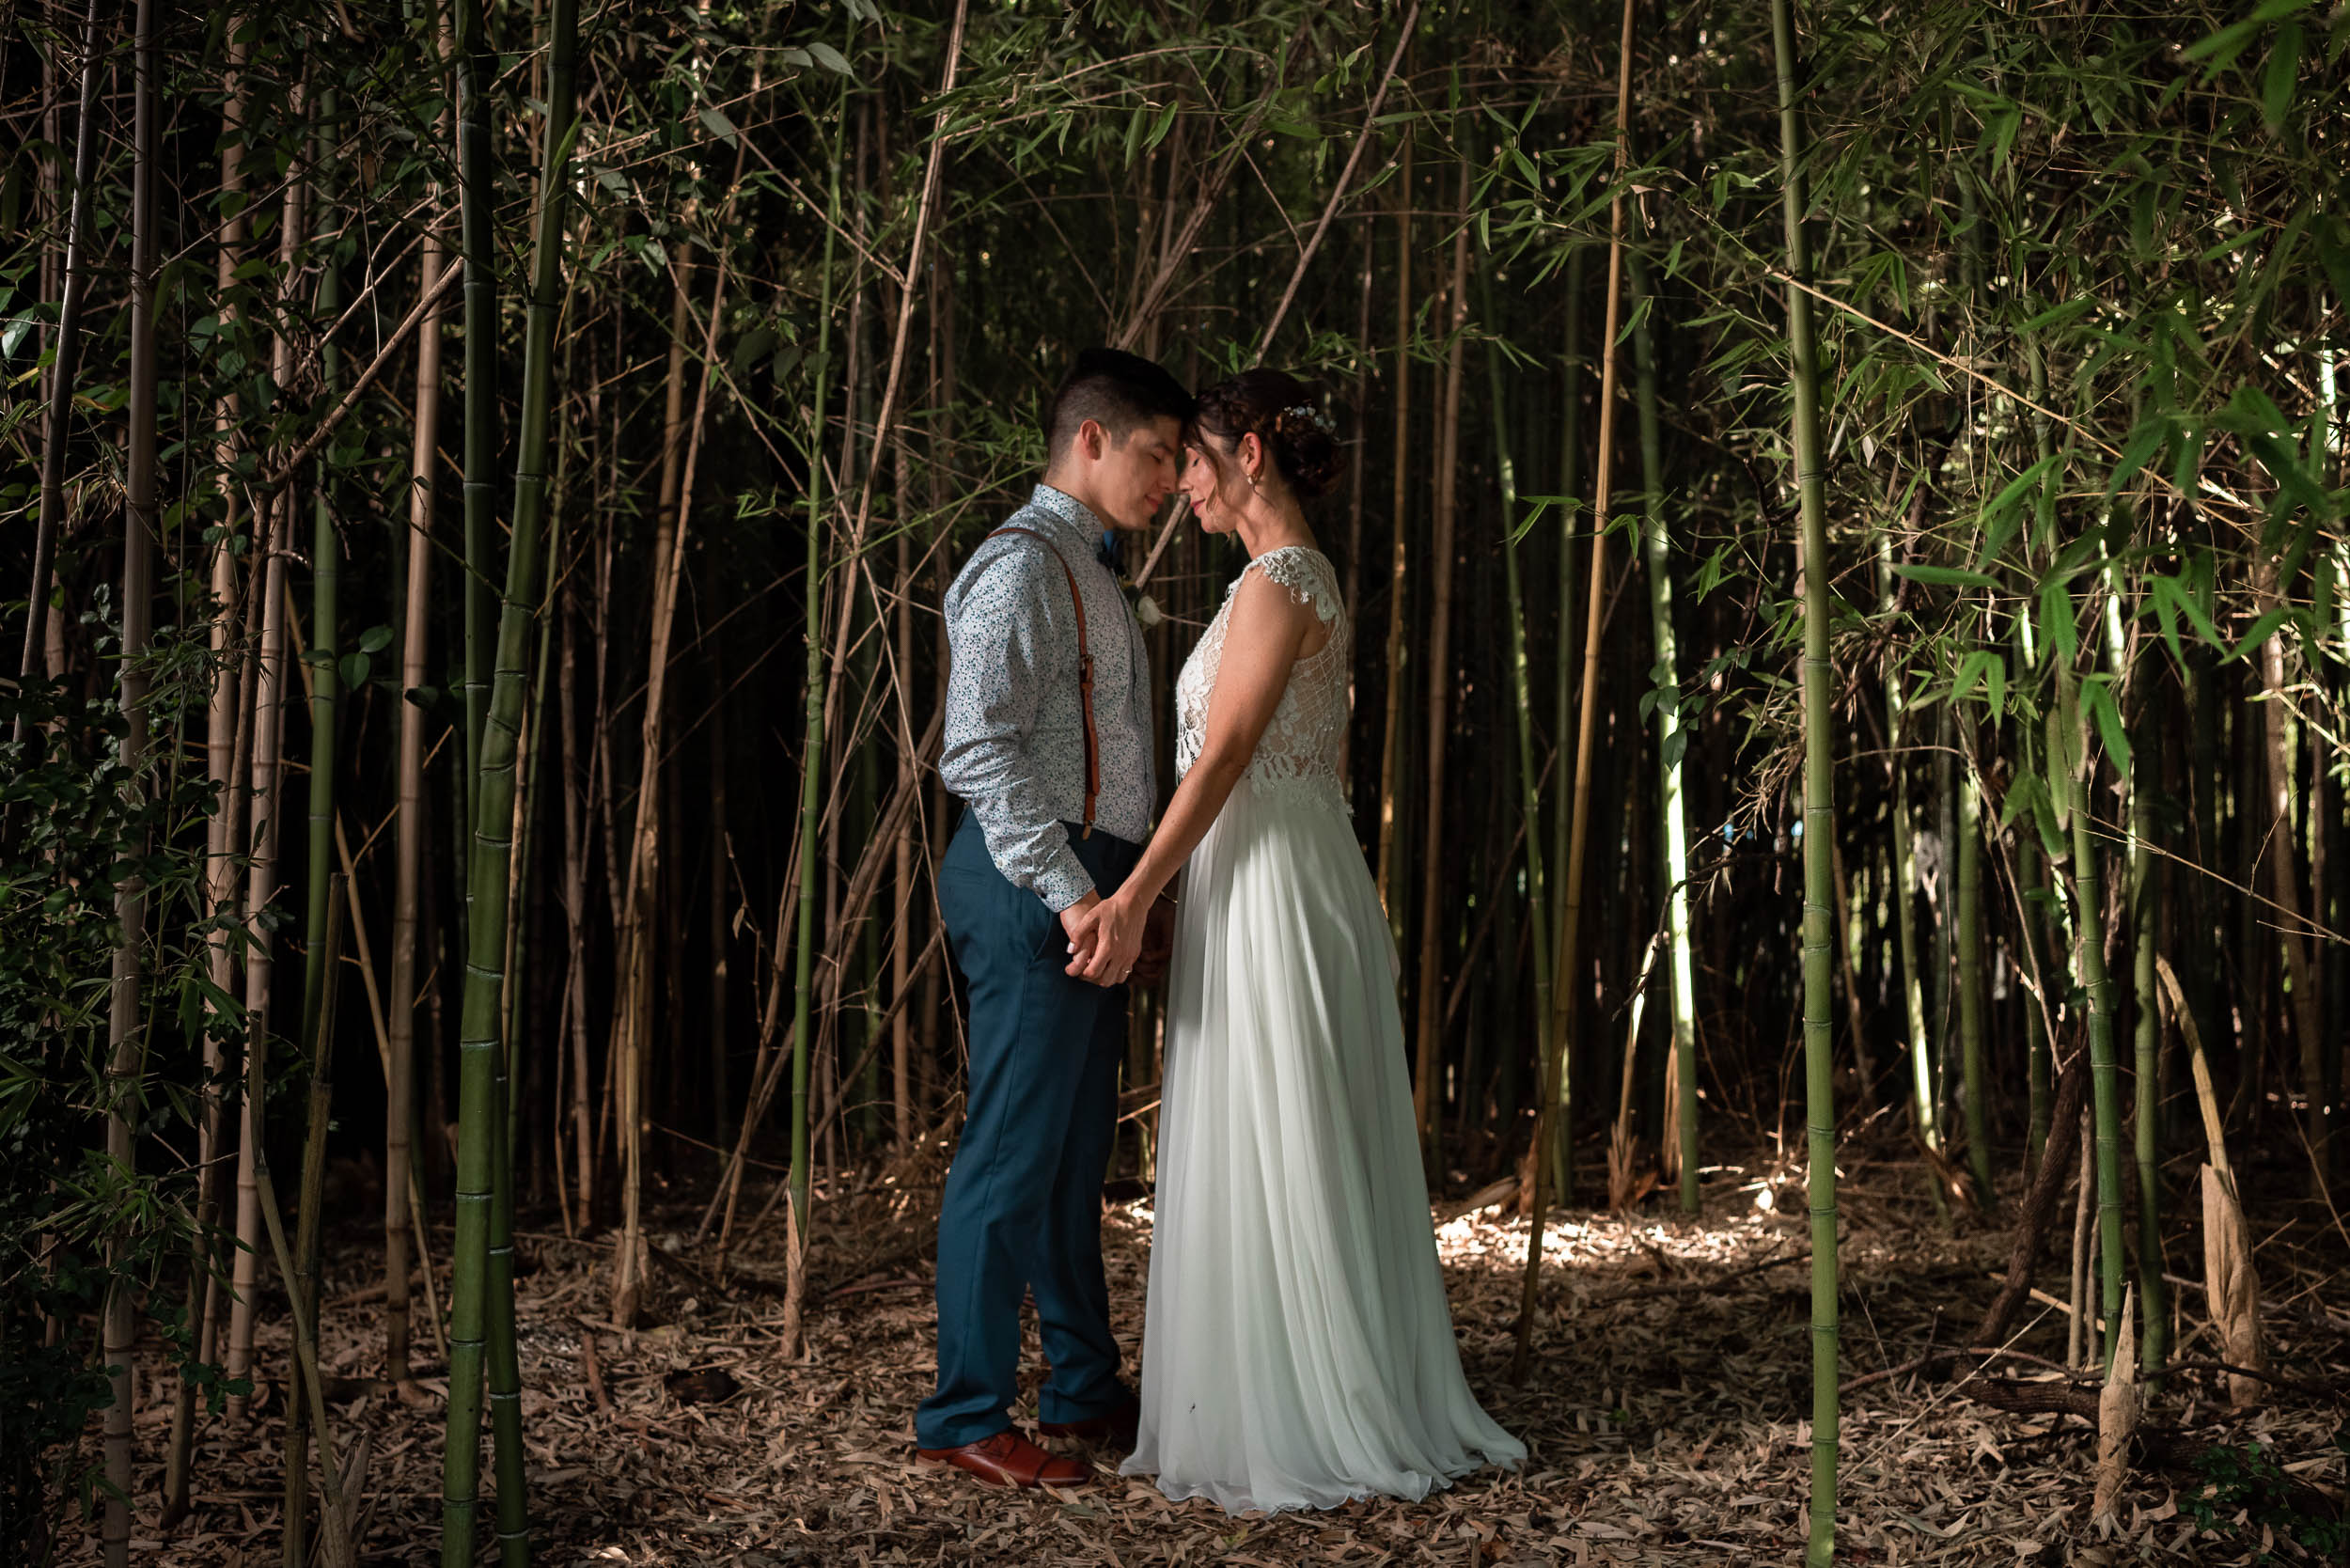 Mercury-Hall-Austin-Wedding-Photographers-portrait-bamboo-outdoor-summer-groom-bride